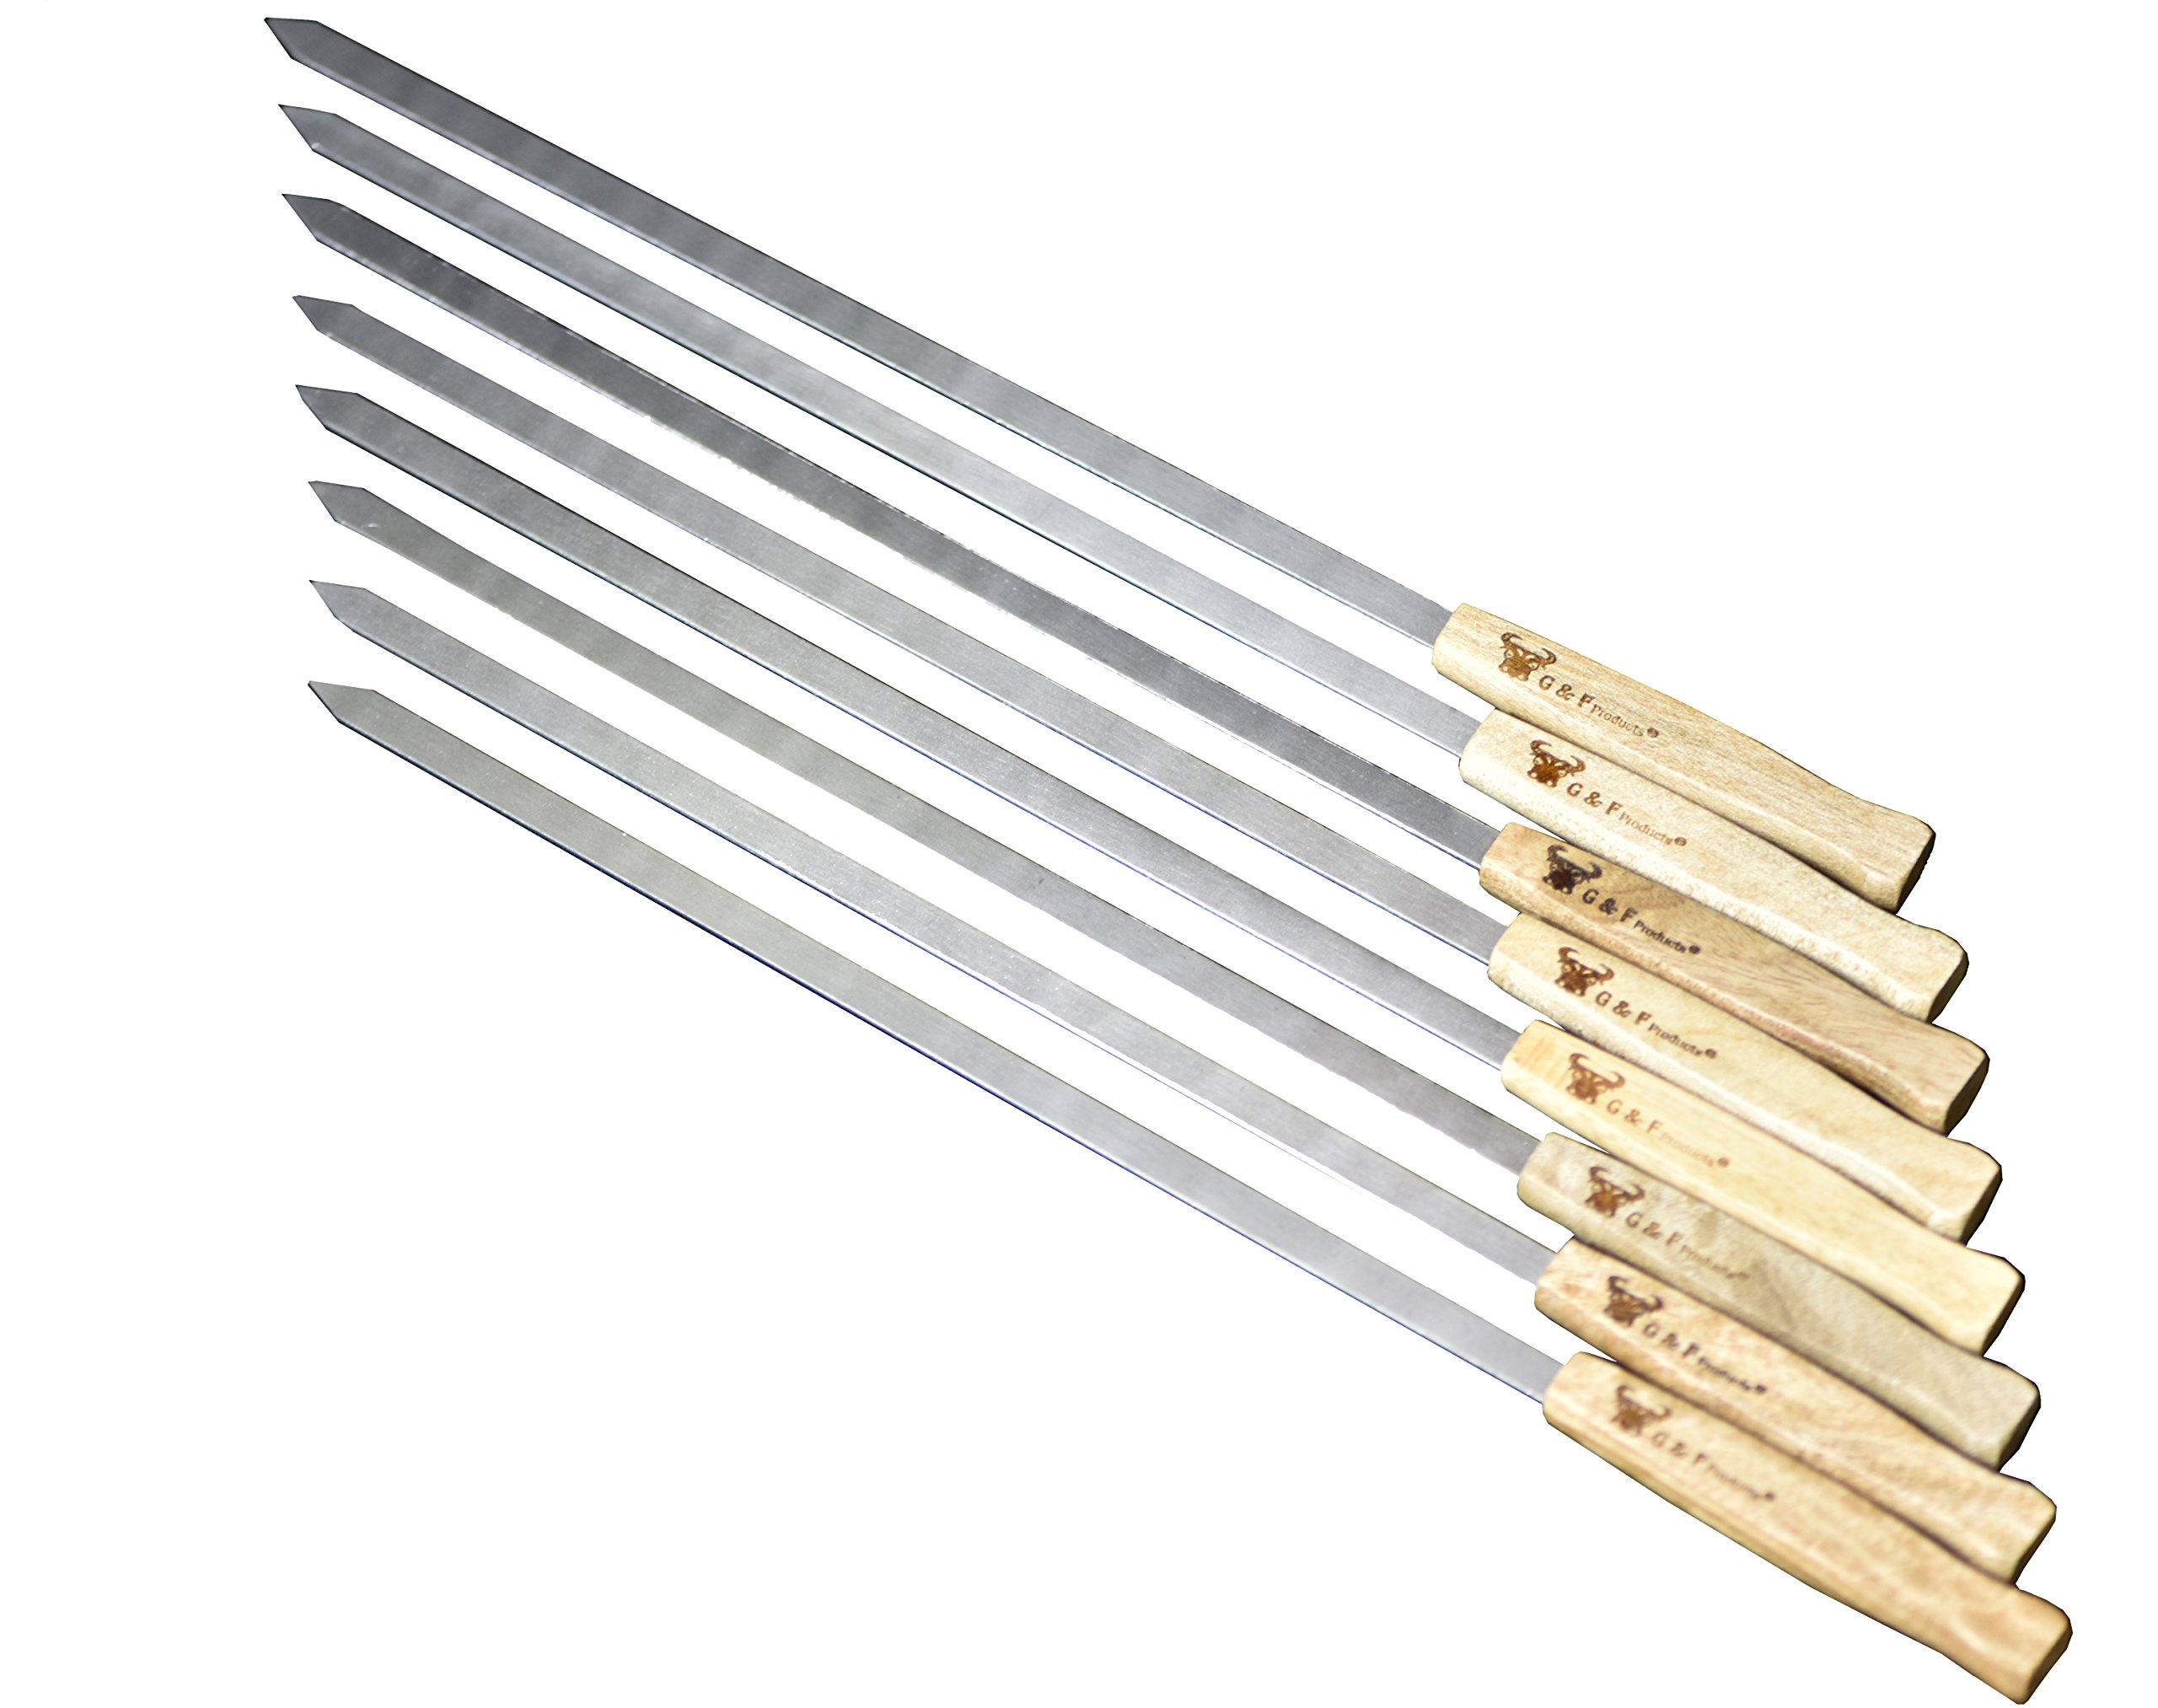 17 Inch Stainless Brazilian Style Skewers Handle